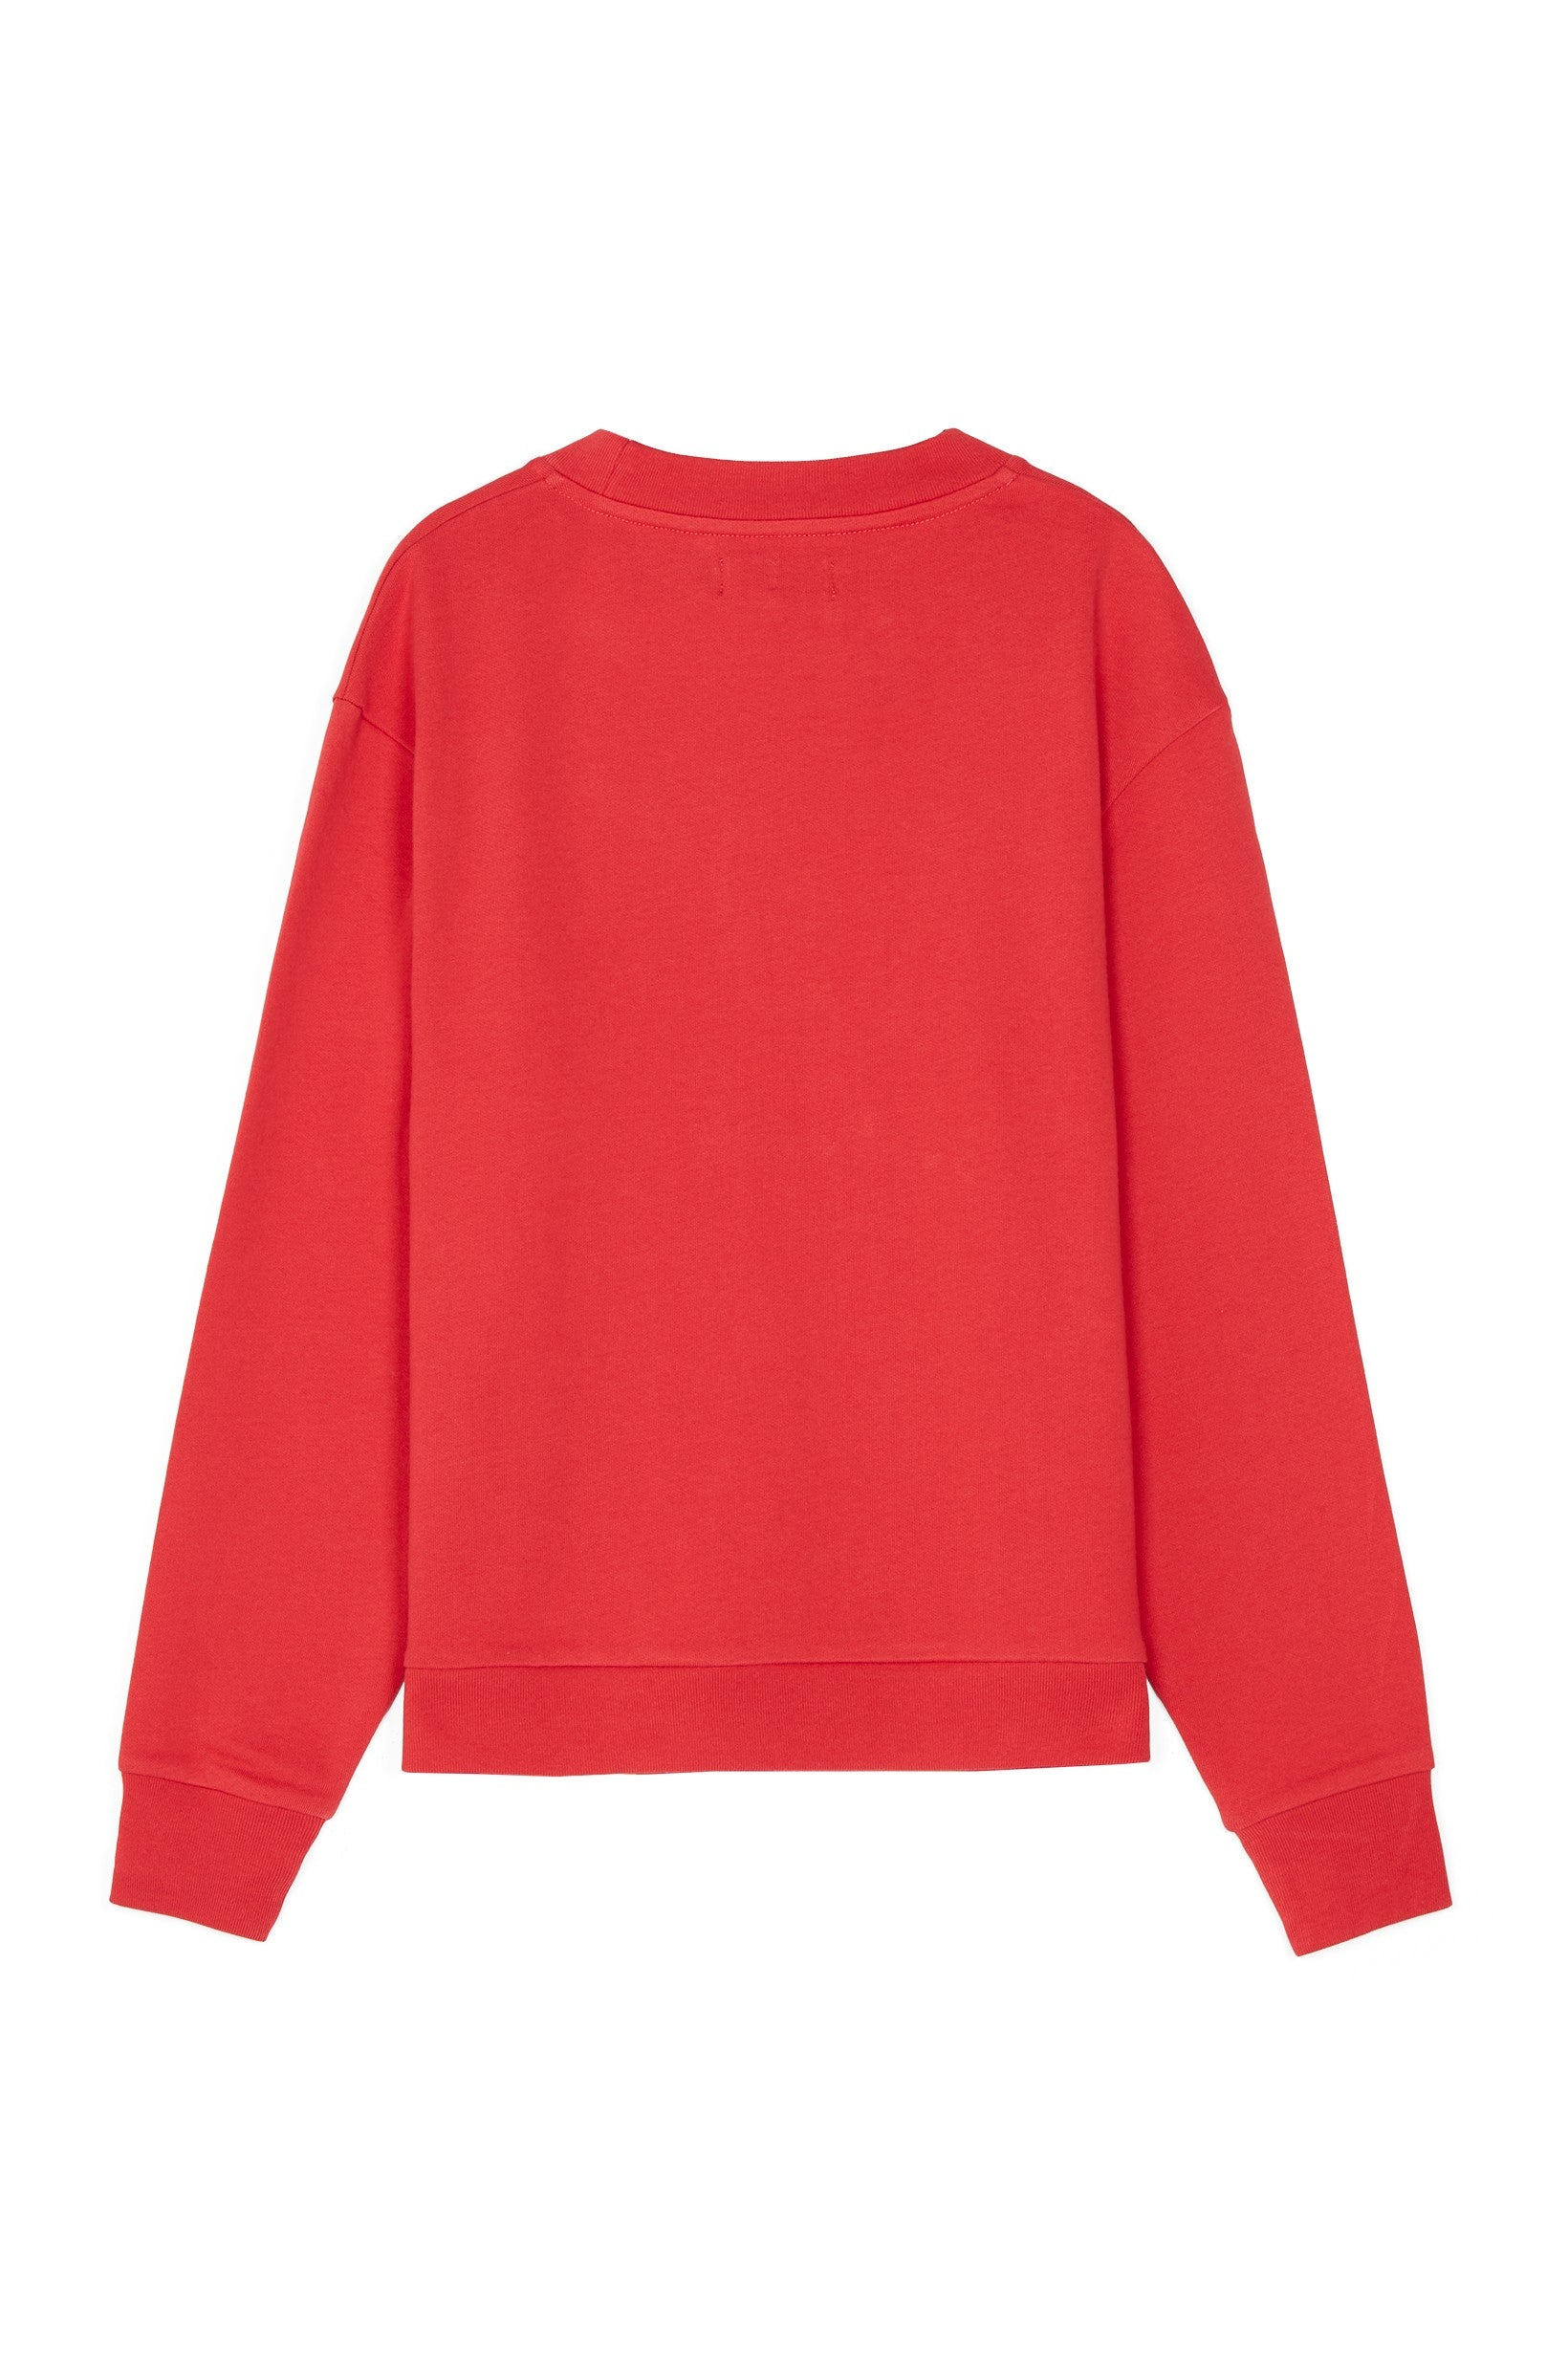 Fred Perry Sports Authentic Embroidered Sweatshirt Coral